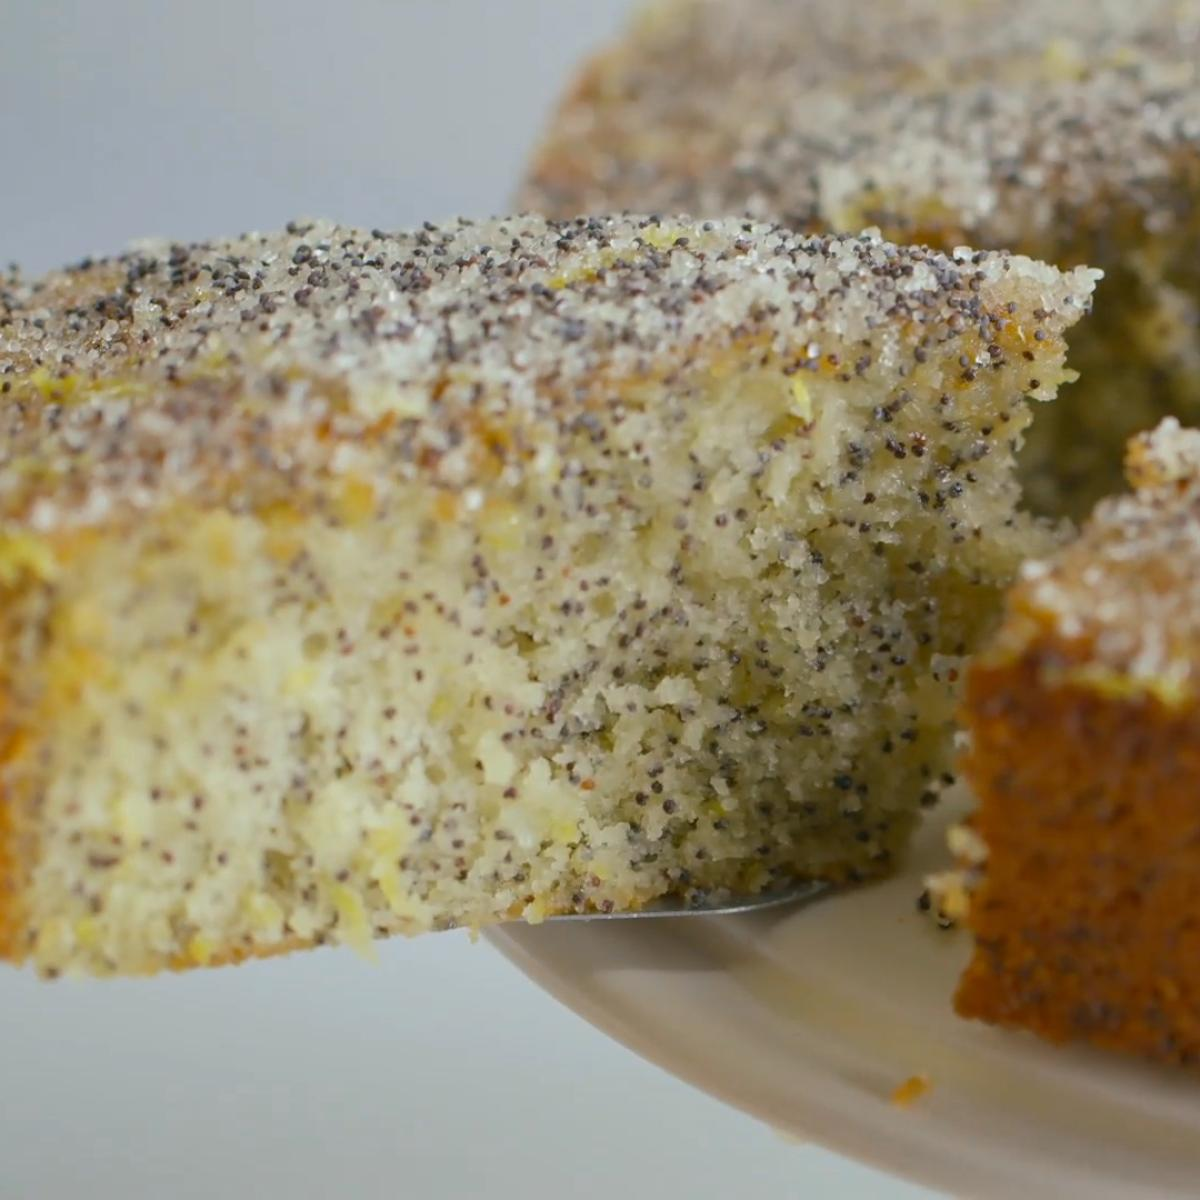 Cs double lemon drizzle cake with poppy seeds